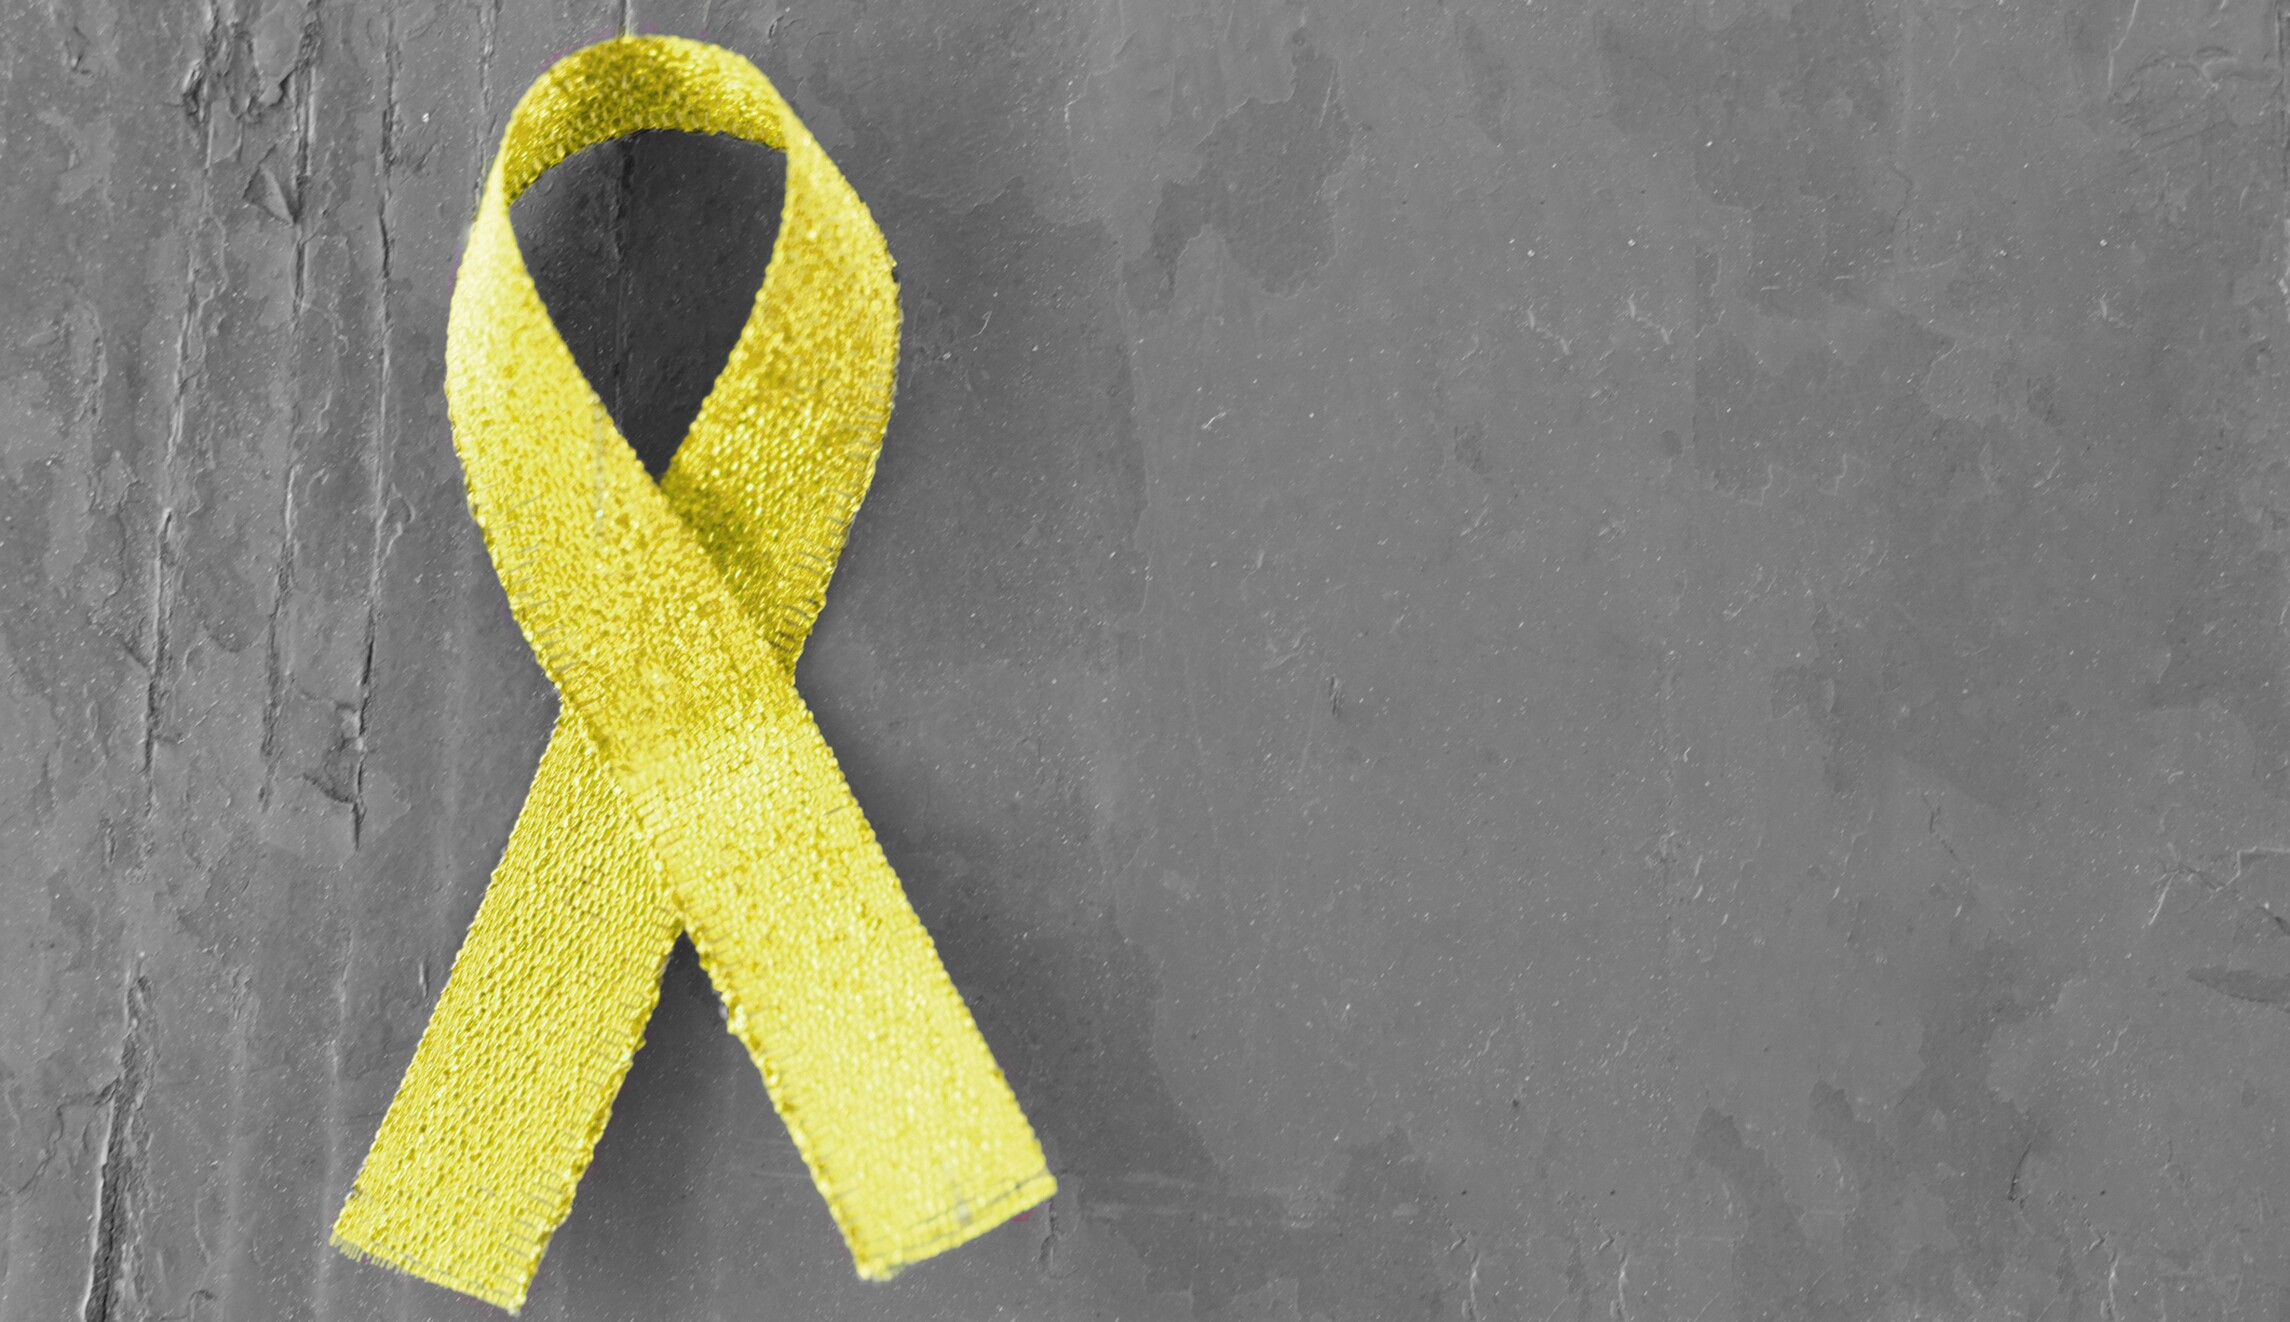 Reflections On World Suicide Prevention Day